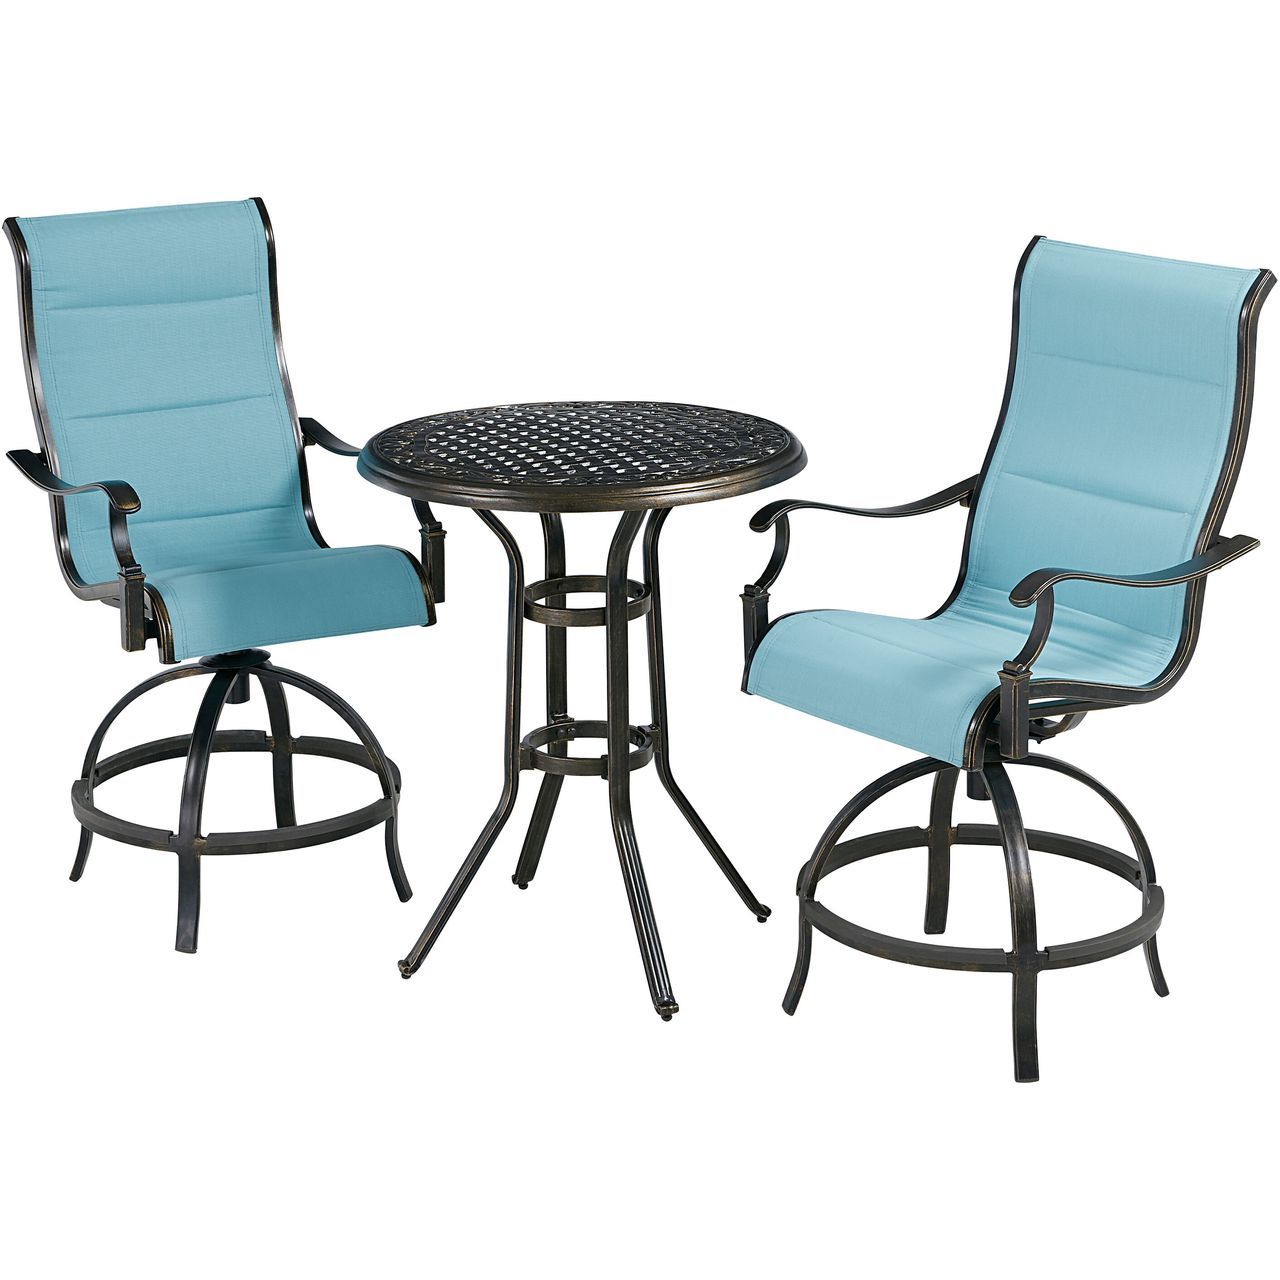 """Hanover Traditions 3-Pc 30"""" High-Dining Bistro Set With Blue Chairs"""